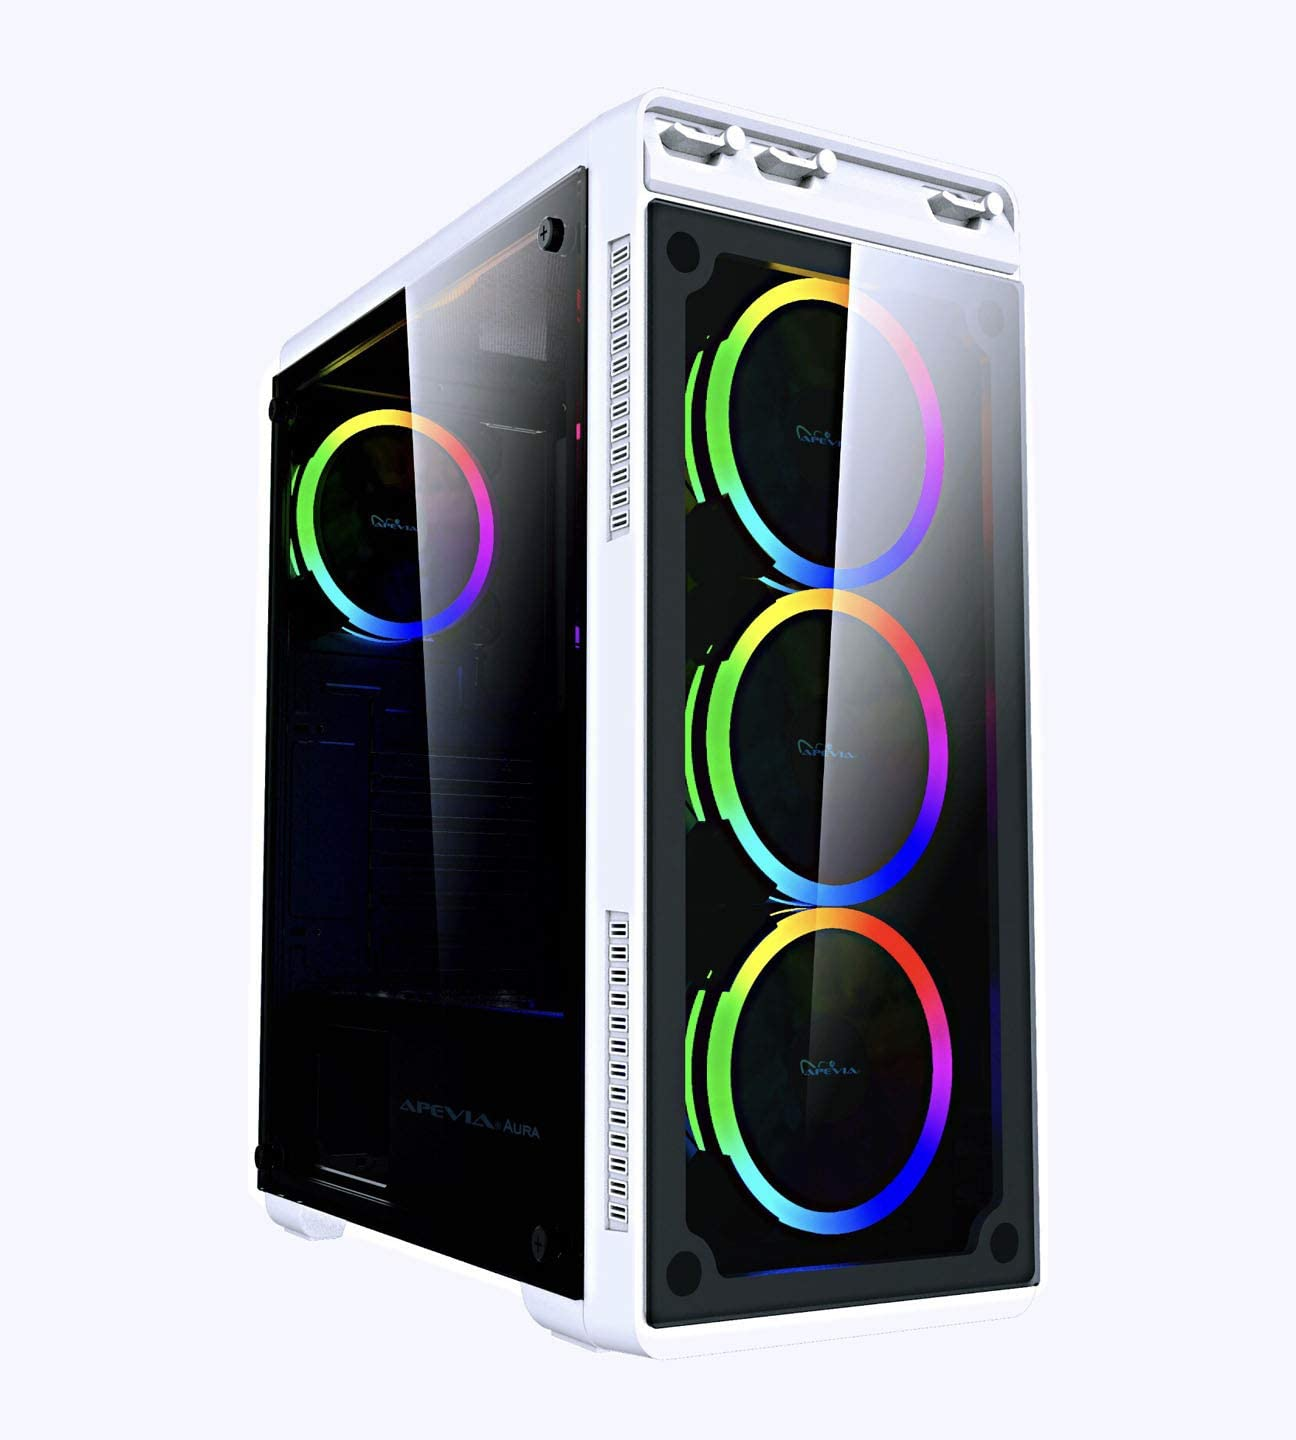 Apevia Aura-S-WH Mid Tower Gaming Case with 2 x Full-Size Tempered Glass Panel, Top USB3.0/USB2.0/Audio Ports, 4 x RGB Fans, White Frame